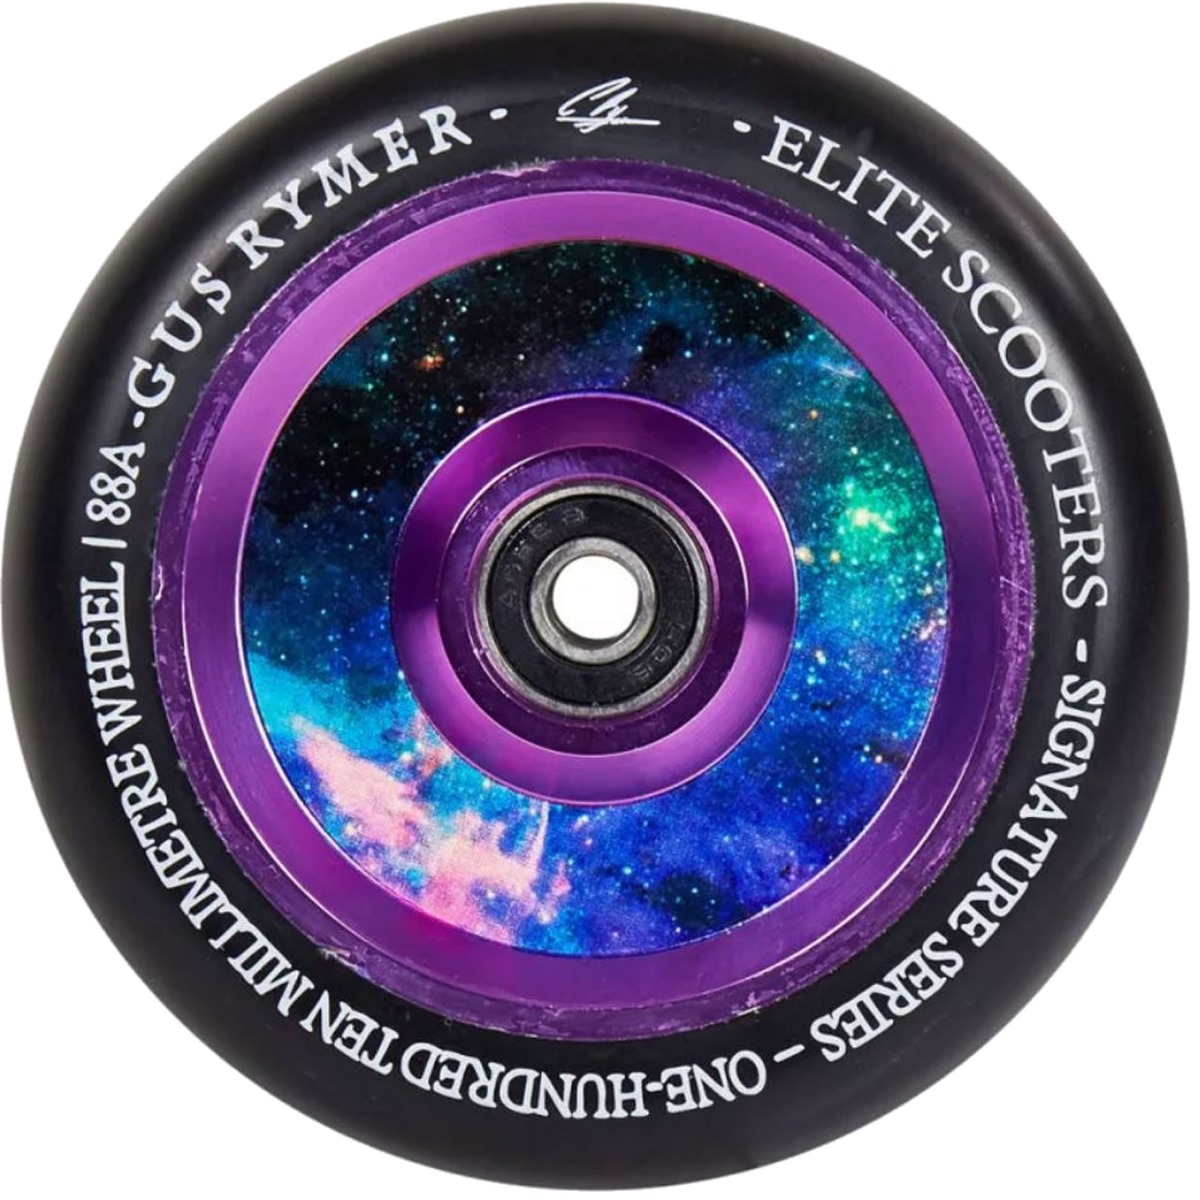 An image of Elite Air Ride Gus Rymer Signature 110mm Scooter Wheels - Black / Galaxy